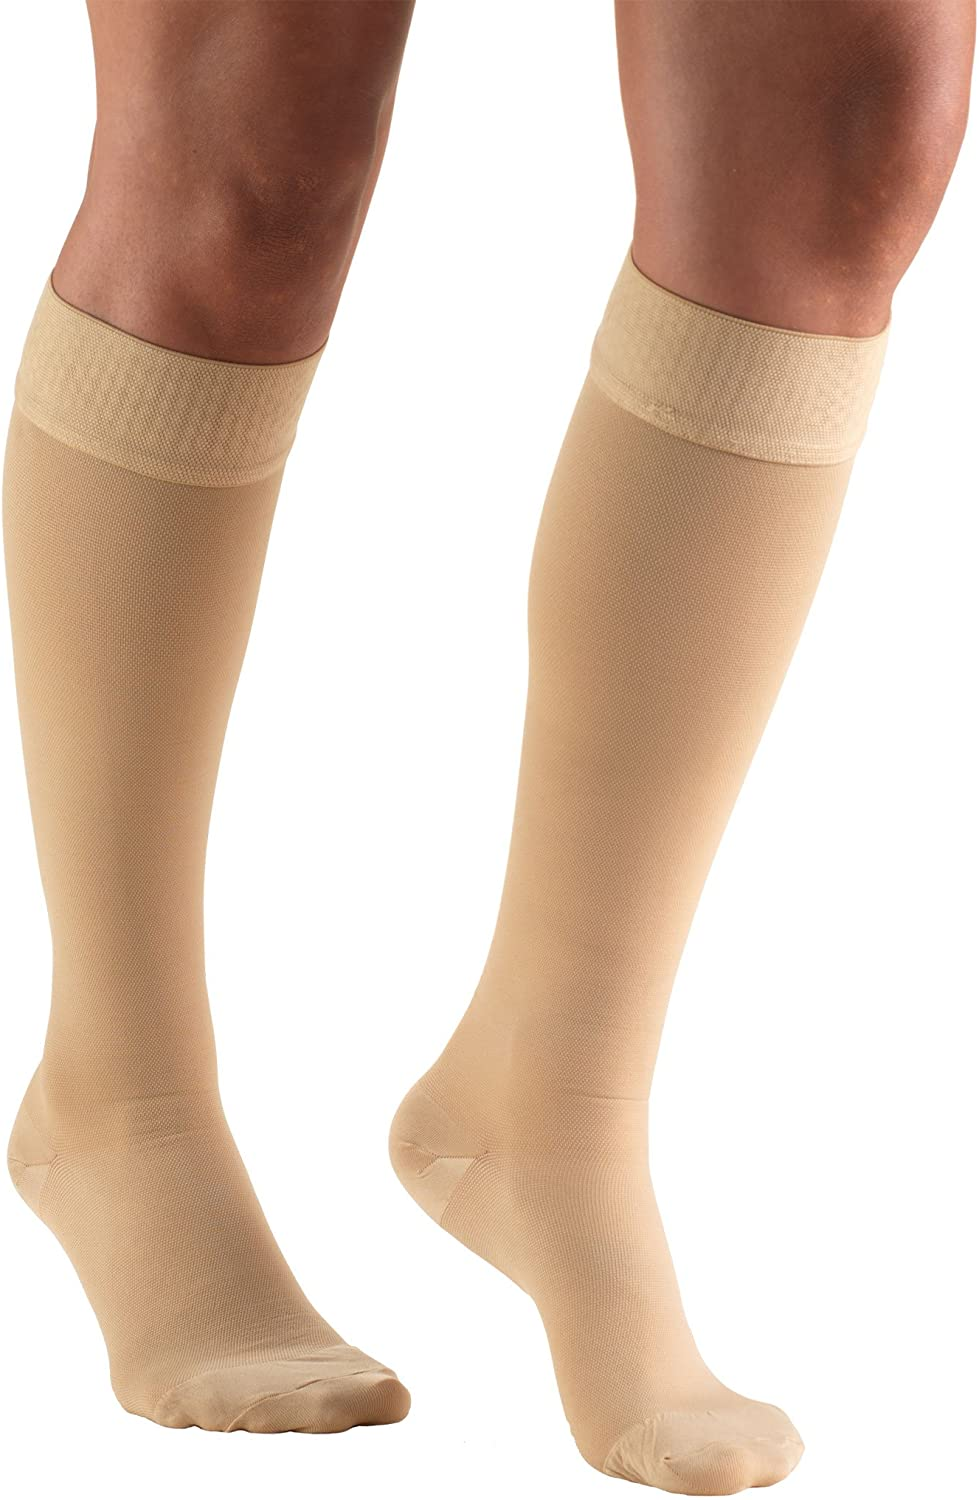 Truform 20-30 mmHg Compression Stockings for Men and Women Beige Dot-Top Open Toe 2X-Large Knee High Length